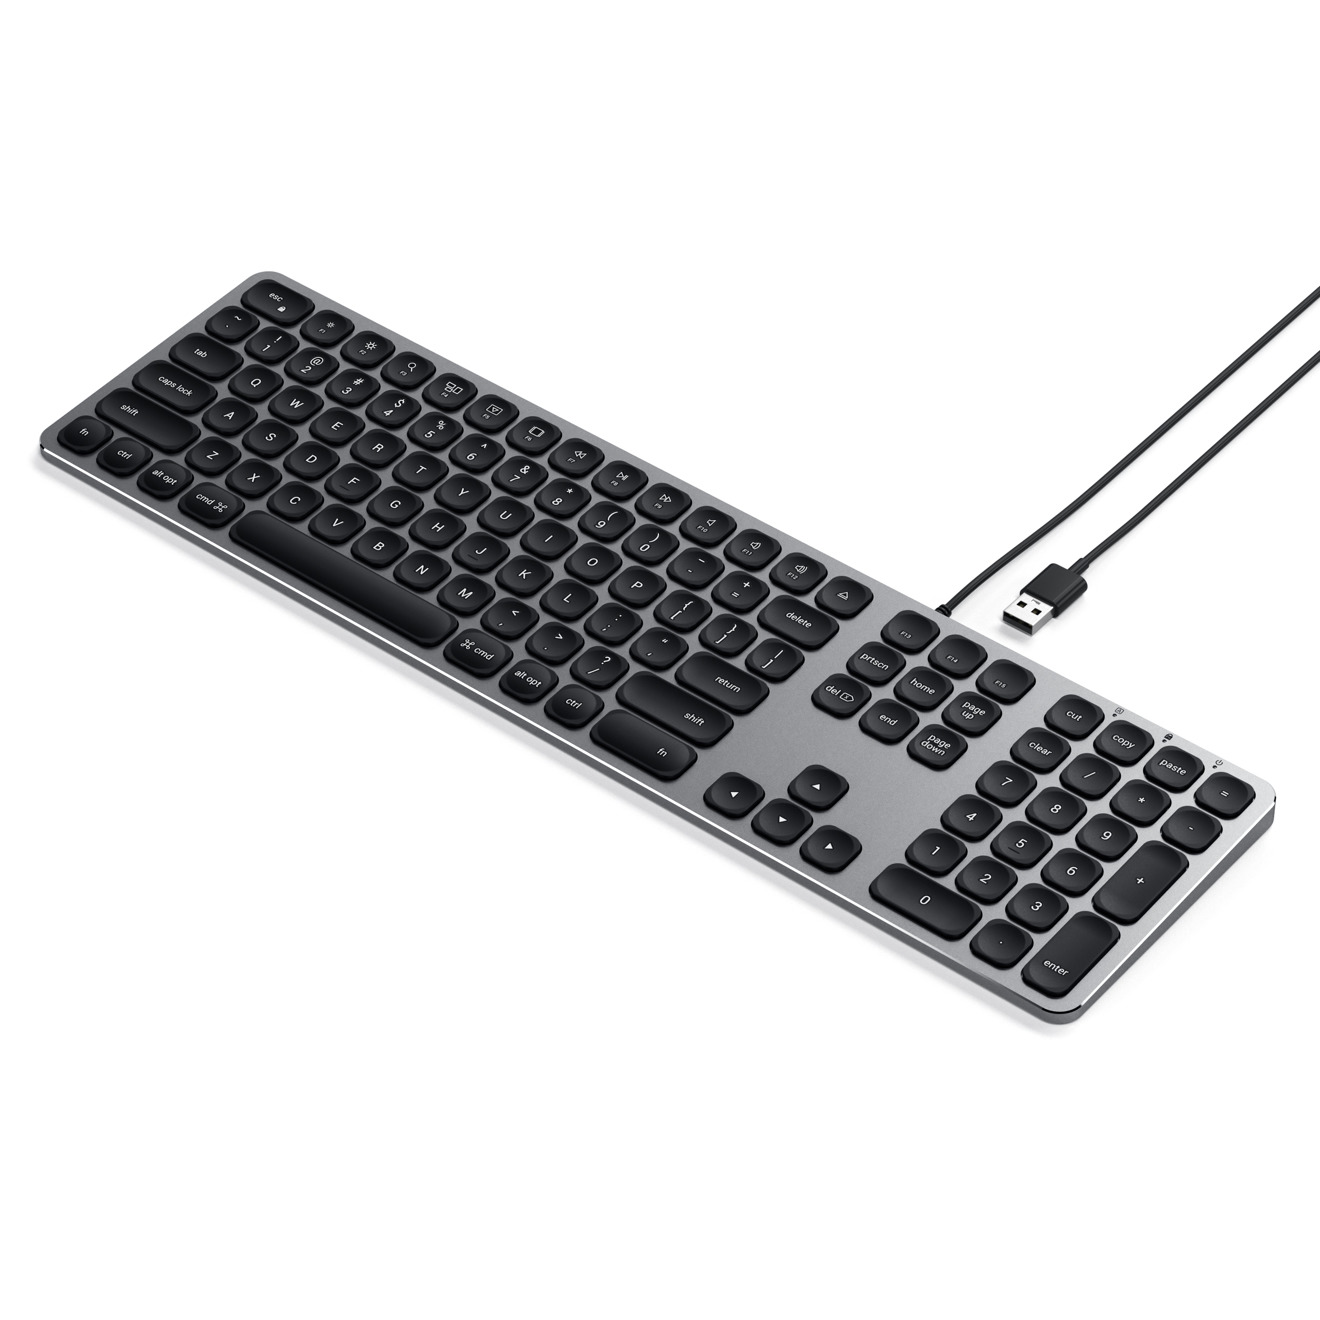 satechi ships new wired wireless aluminum keyboards for desktop macs. Black Bedroom Furniture Sets. Home Design Ideas